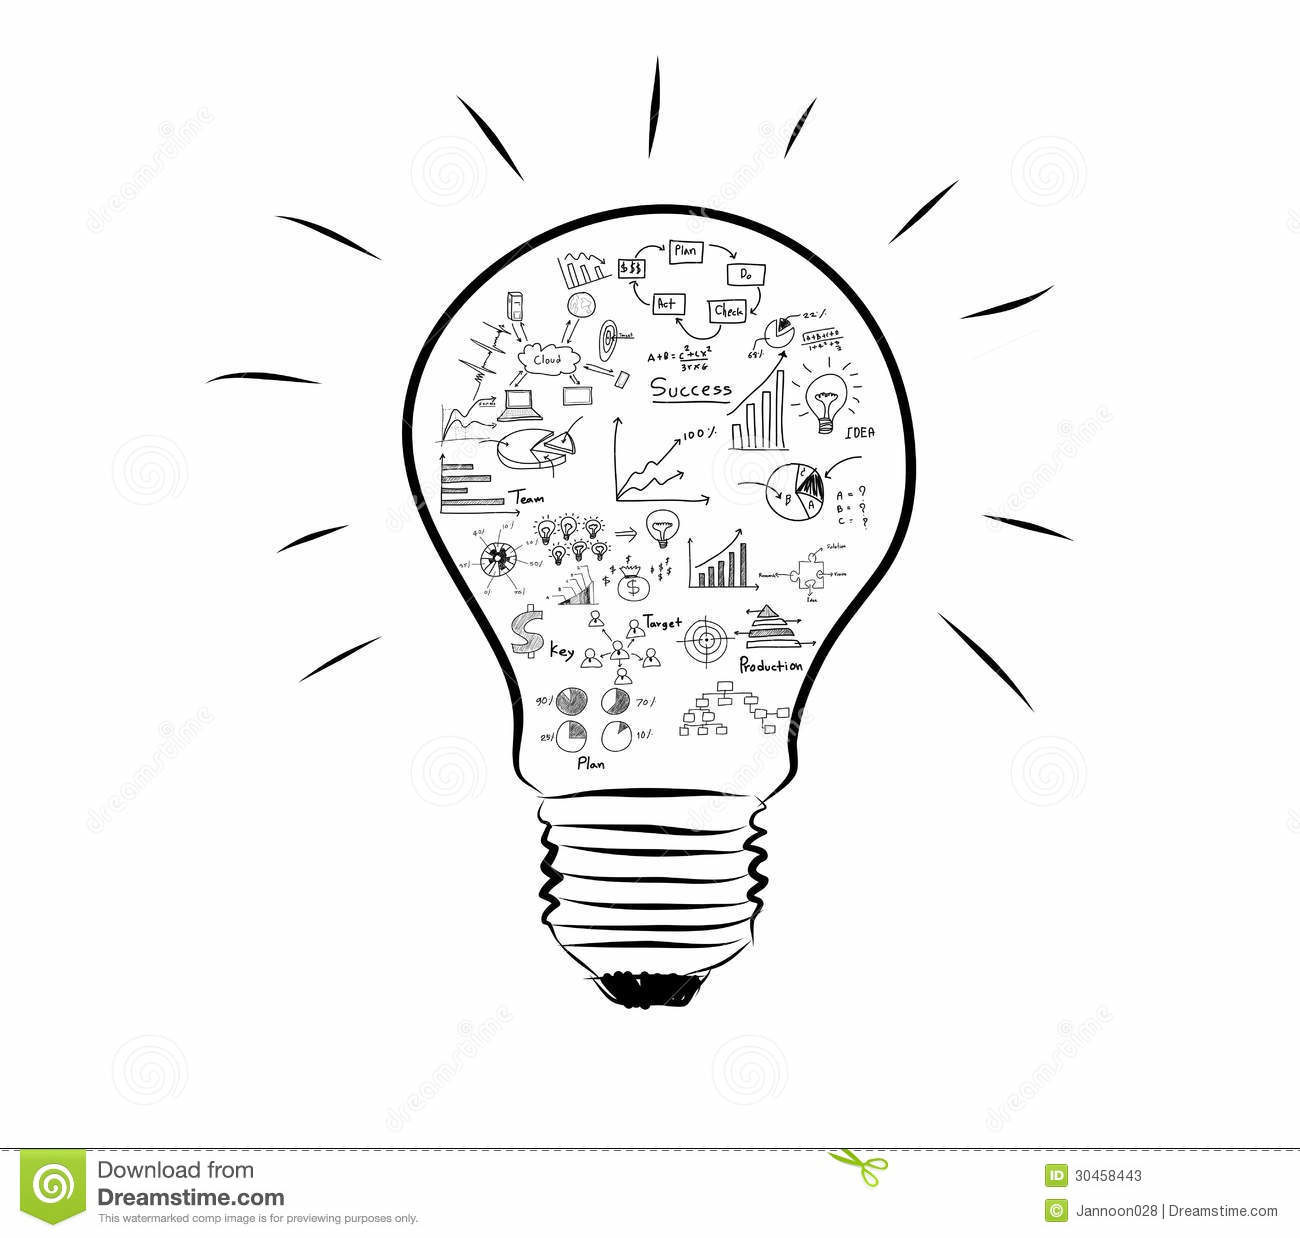 light-bulb-drawing-graph-inside-white-background-30458443.jpg